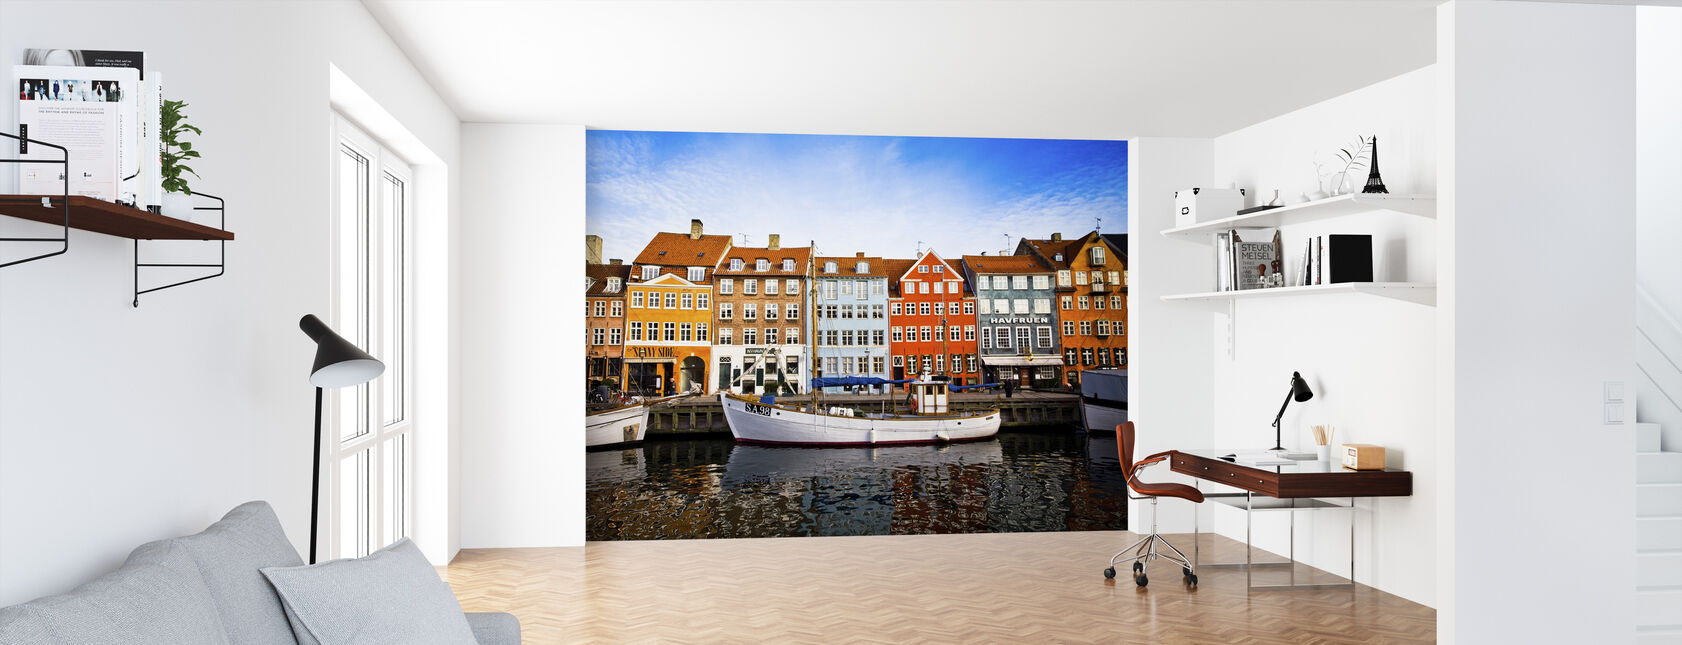 Boats in Nyhavn, Copenhagen, Denmark - Wallpaper - Office